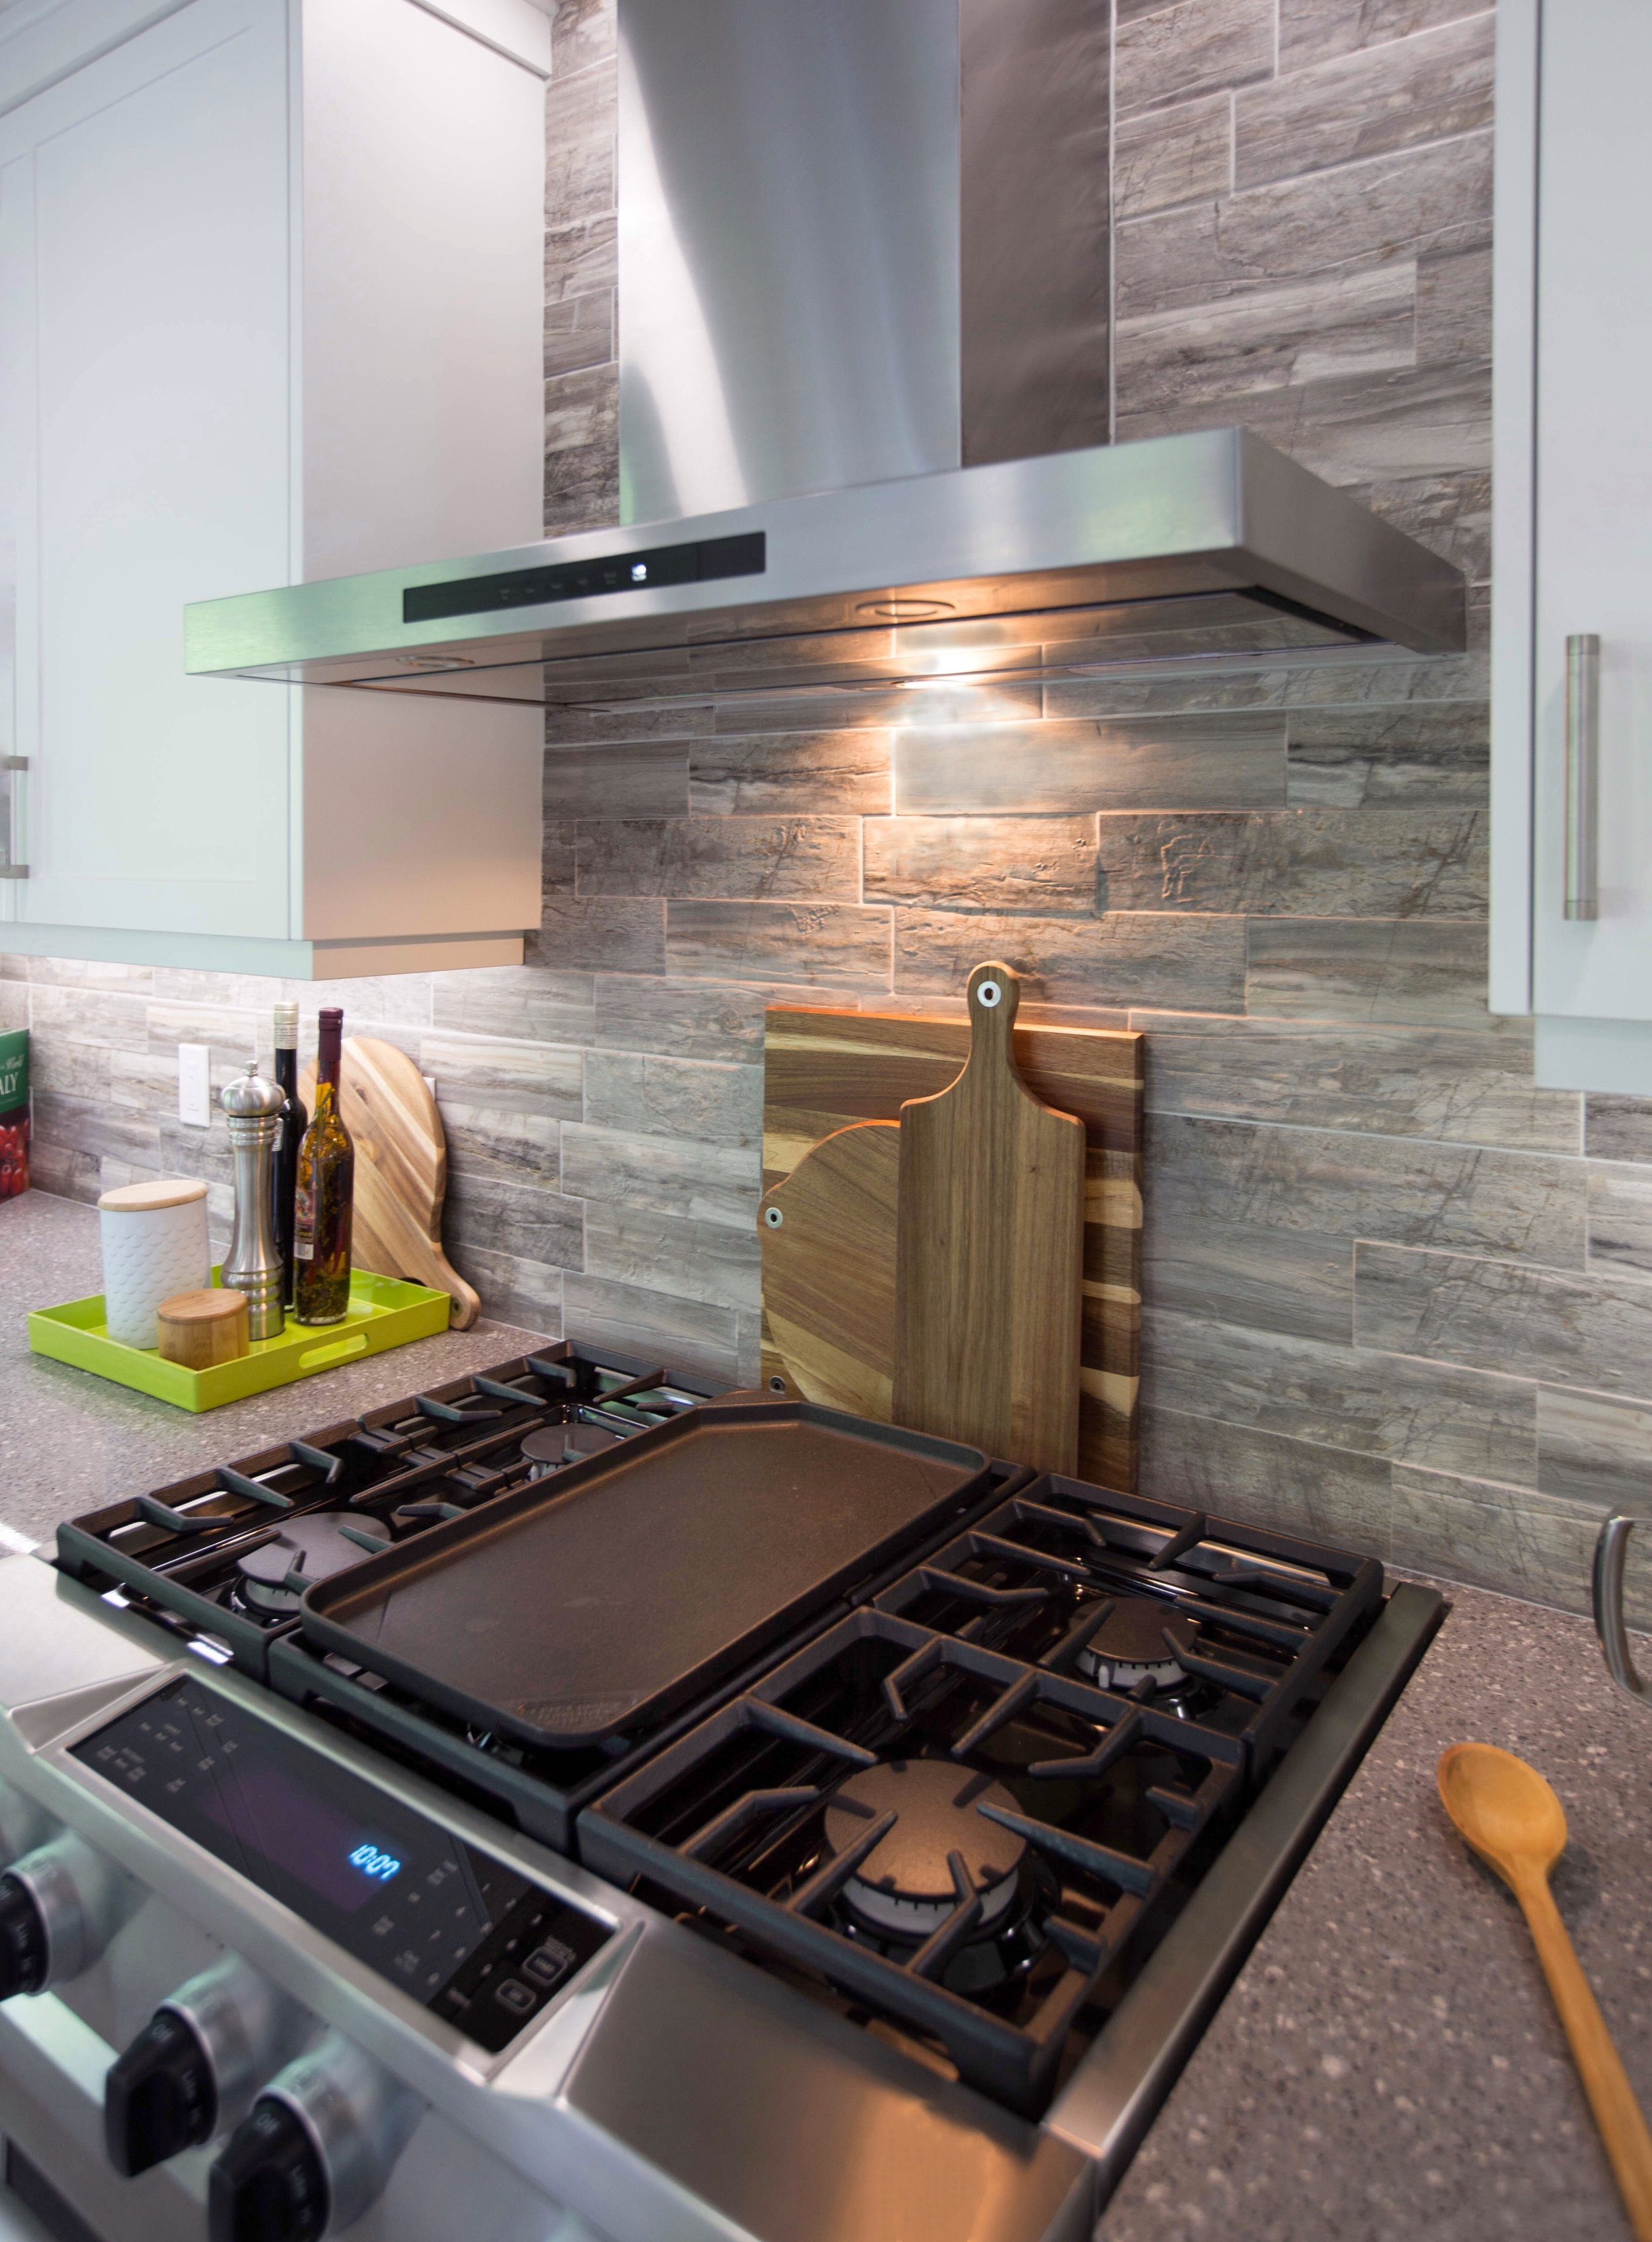 KitchenAid Stove-Kitchen Design-Kitchen Renovation-Style Maven Decor Interior Design-Edmonton Canada